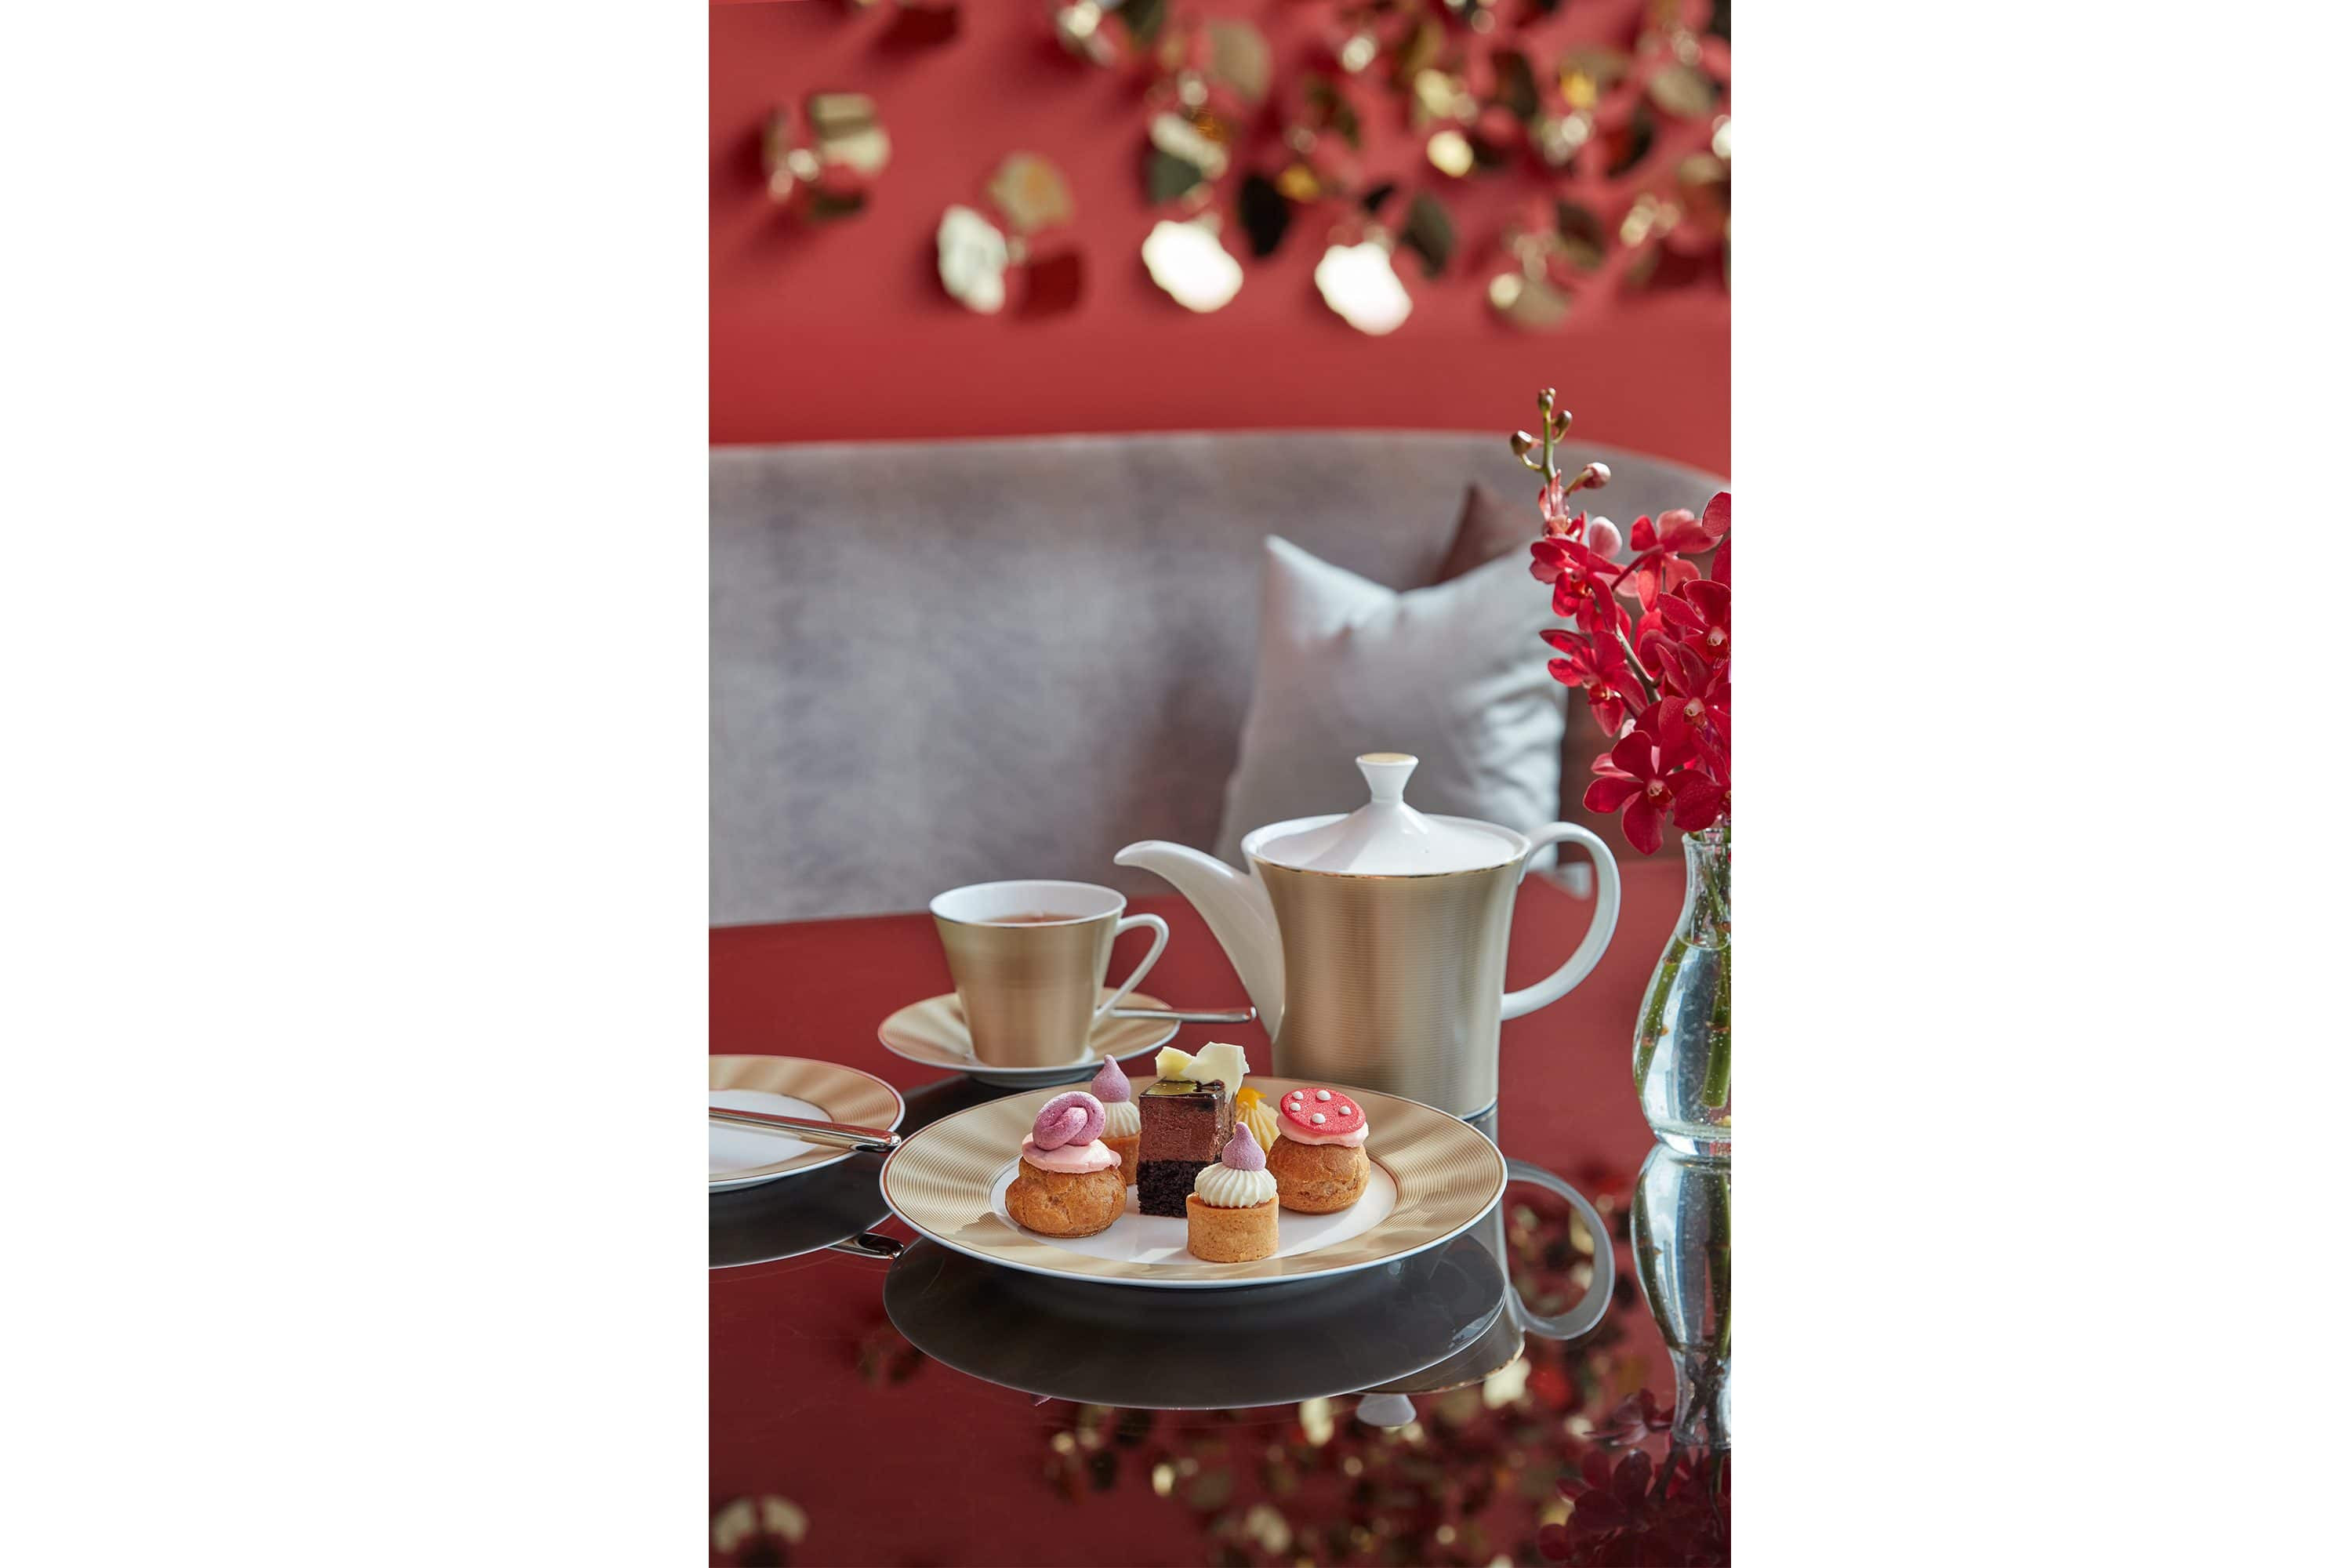 Plate of petit fours and a teapot